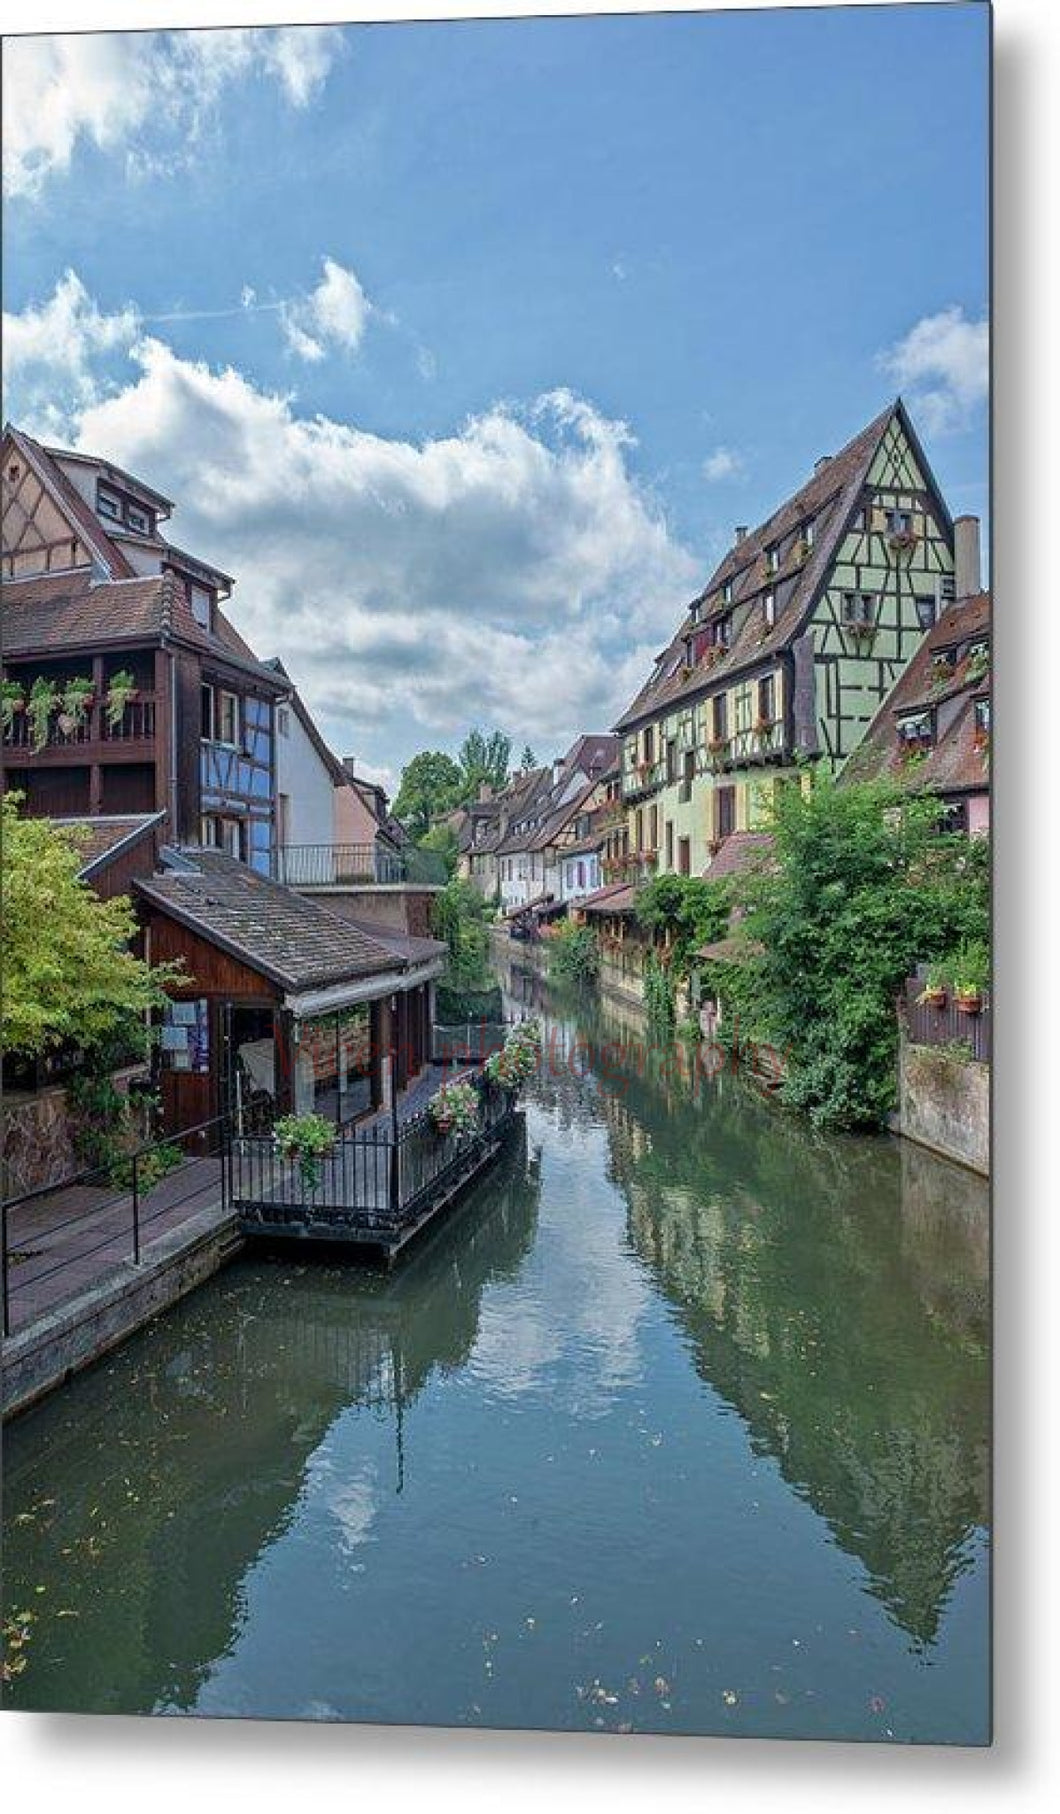 The Village Of Colmar In France - Metal Print 6.625 X 10.000